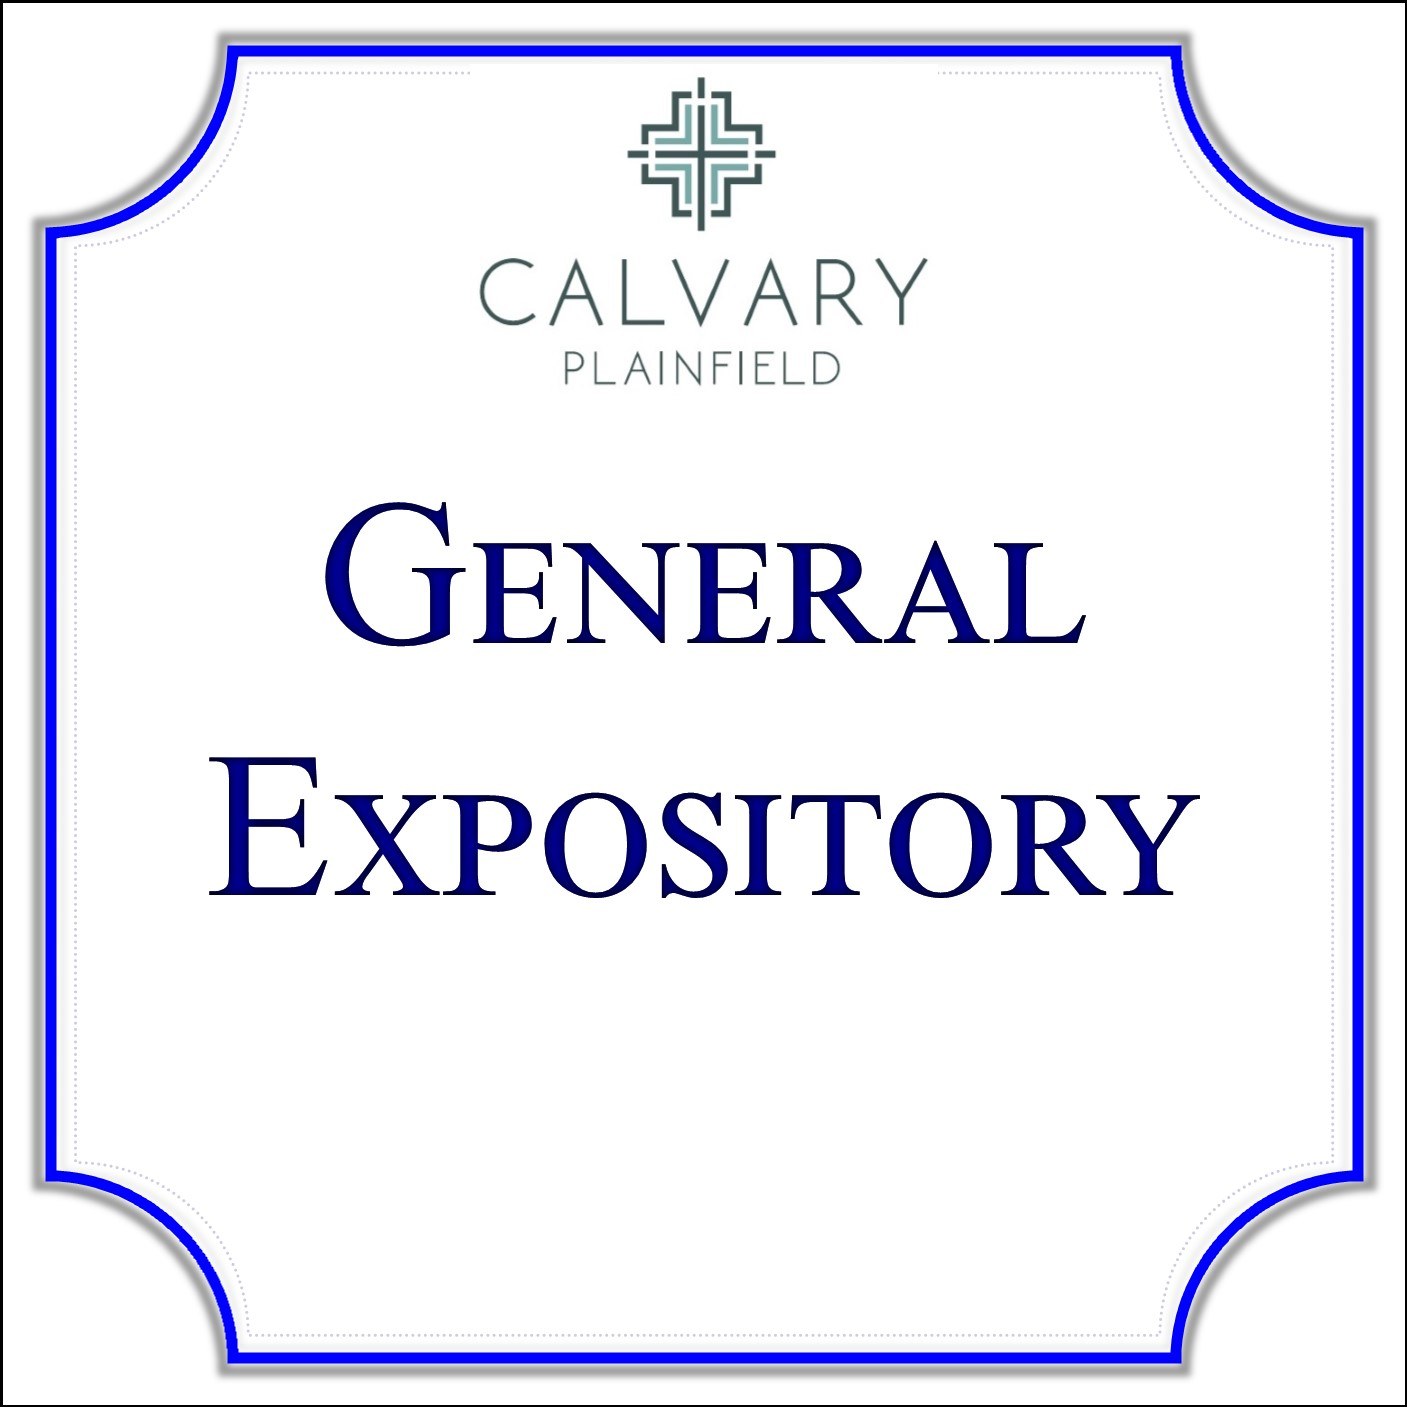 General Expository